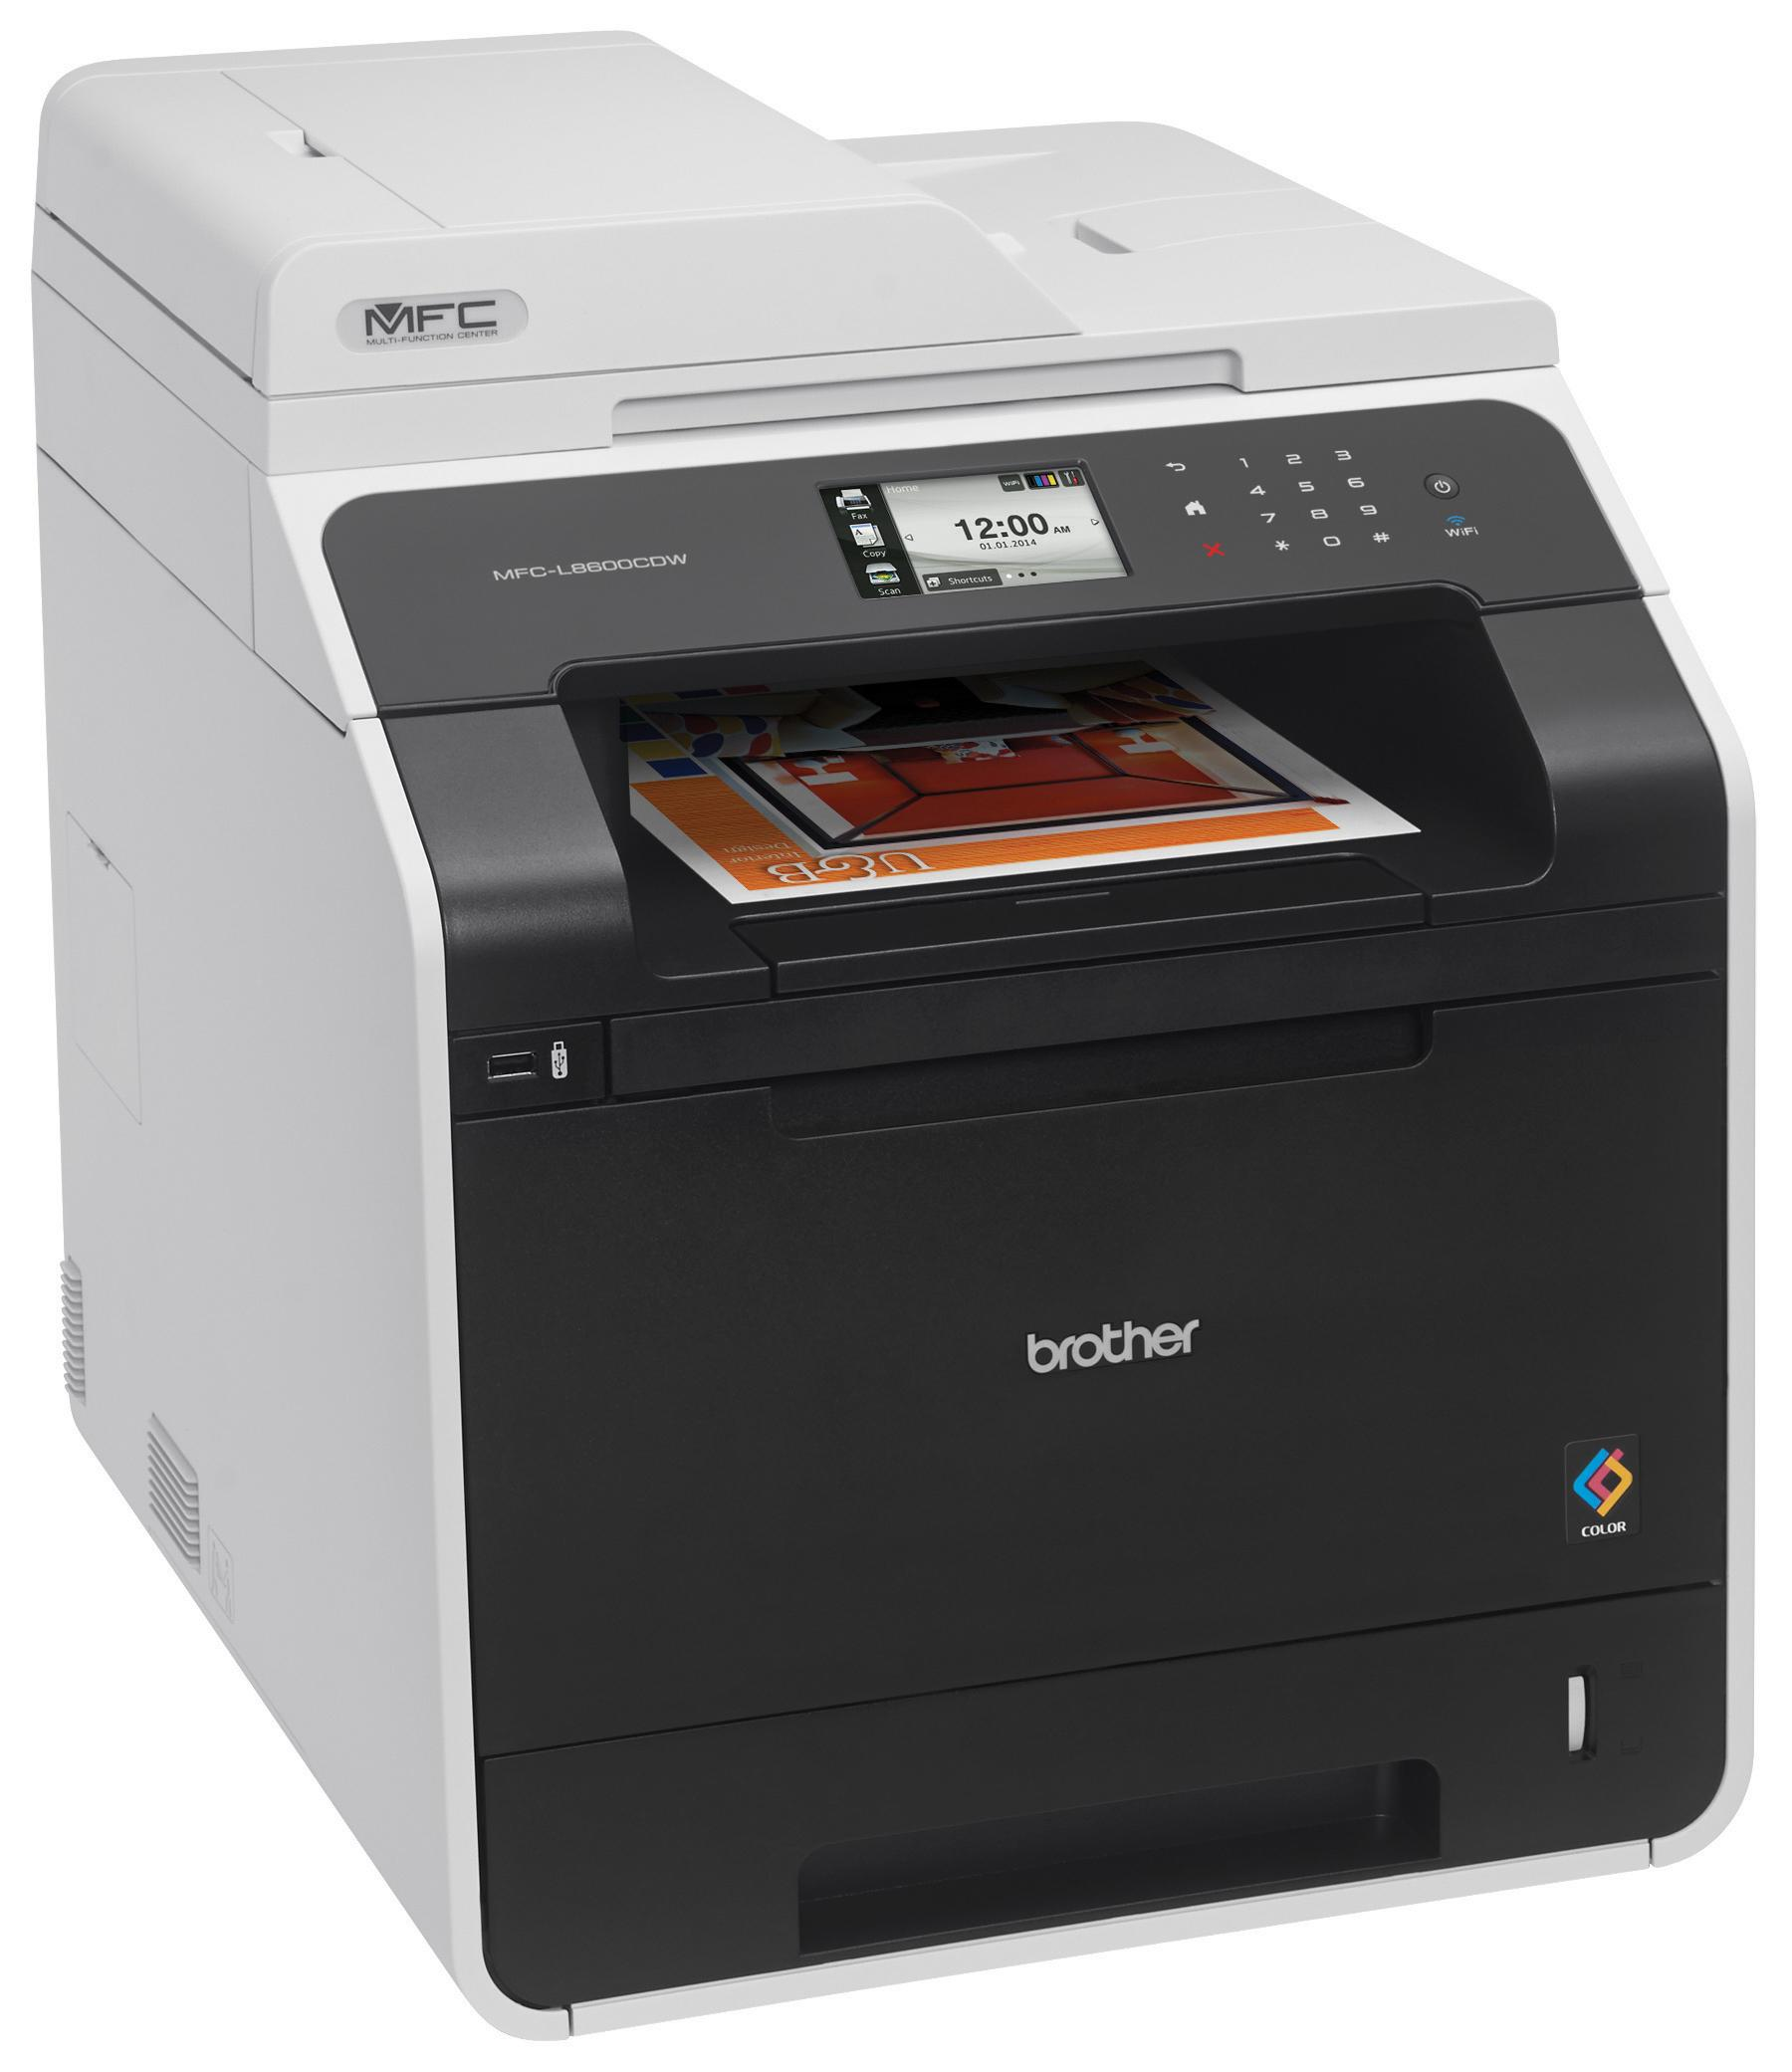 BROTHER 8600CDW DRIVER FOR MAC DOWNLOAD